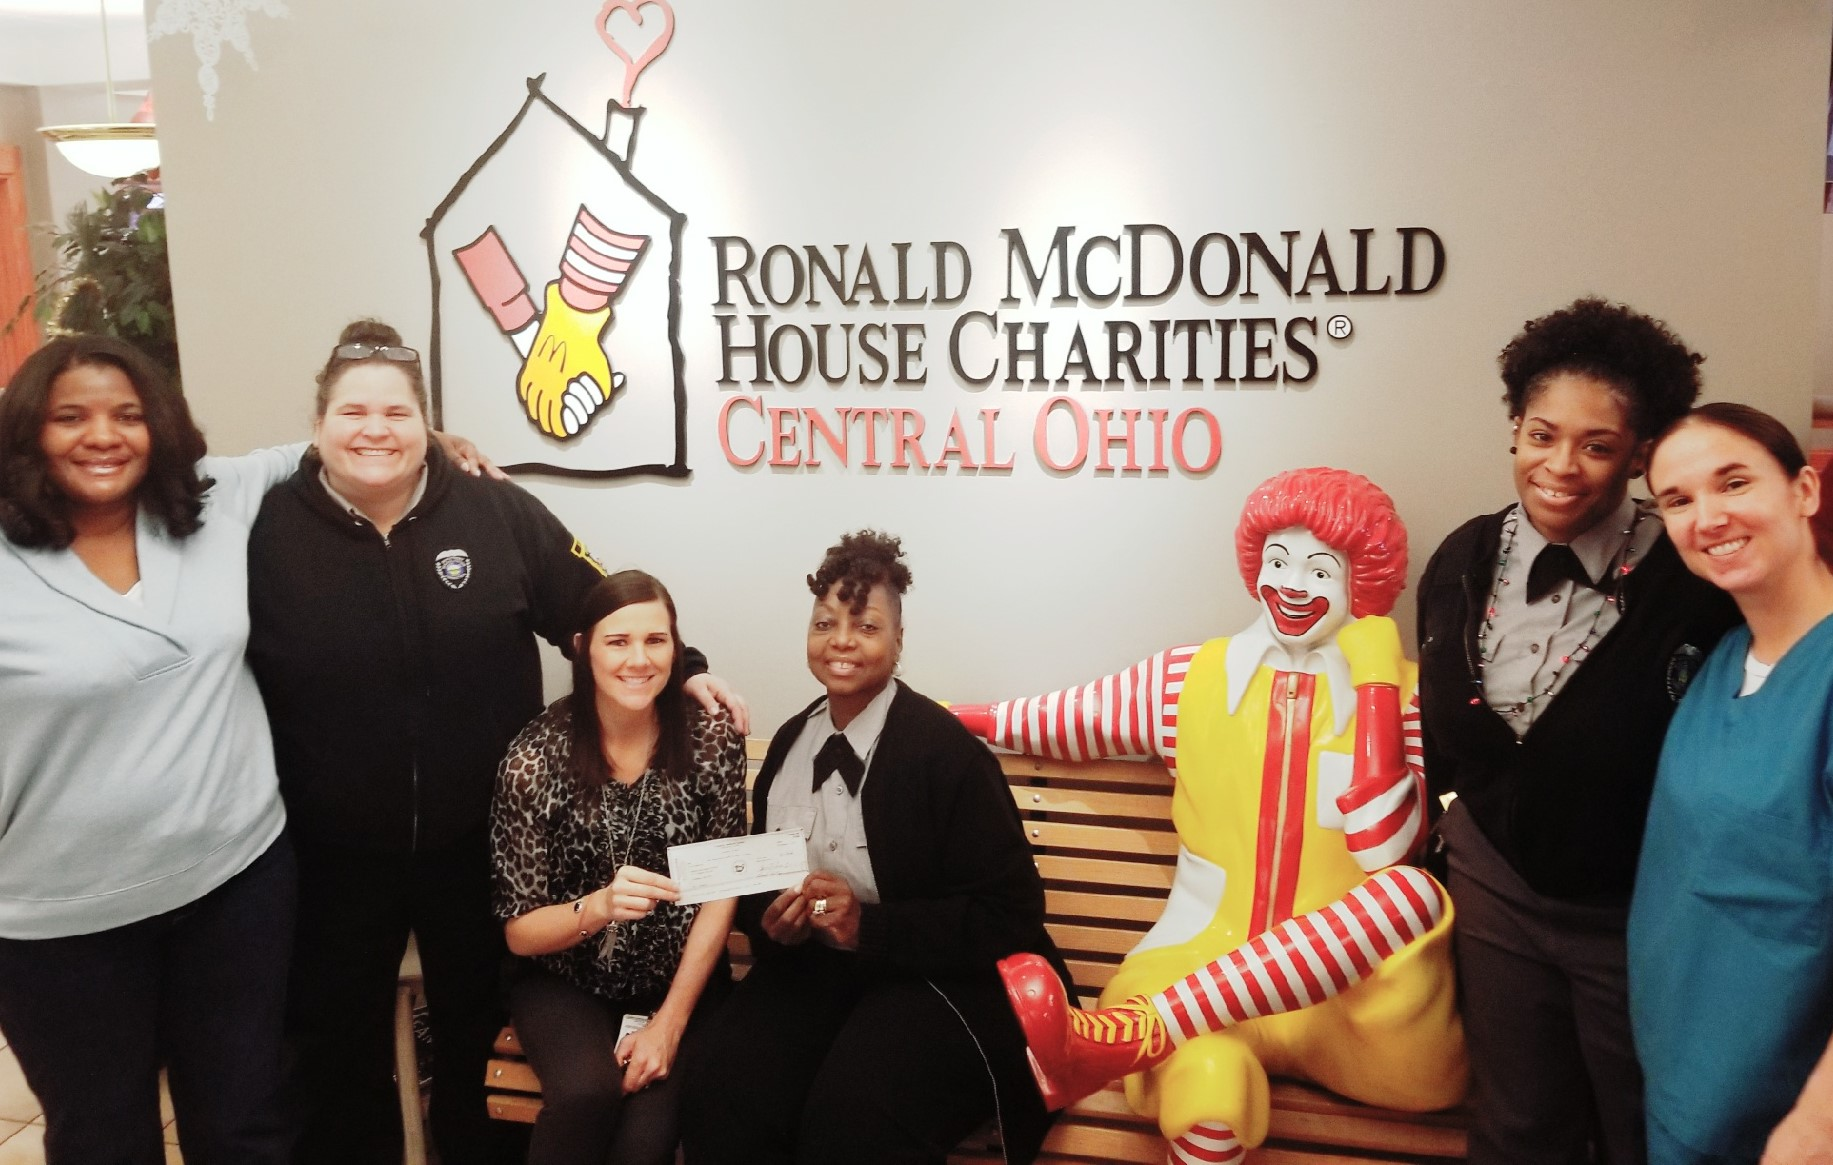 FMC Raises Money for Ronald McDonald House